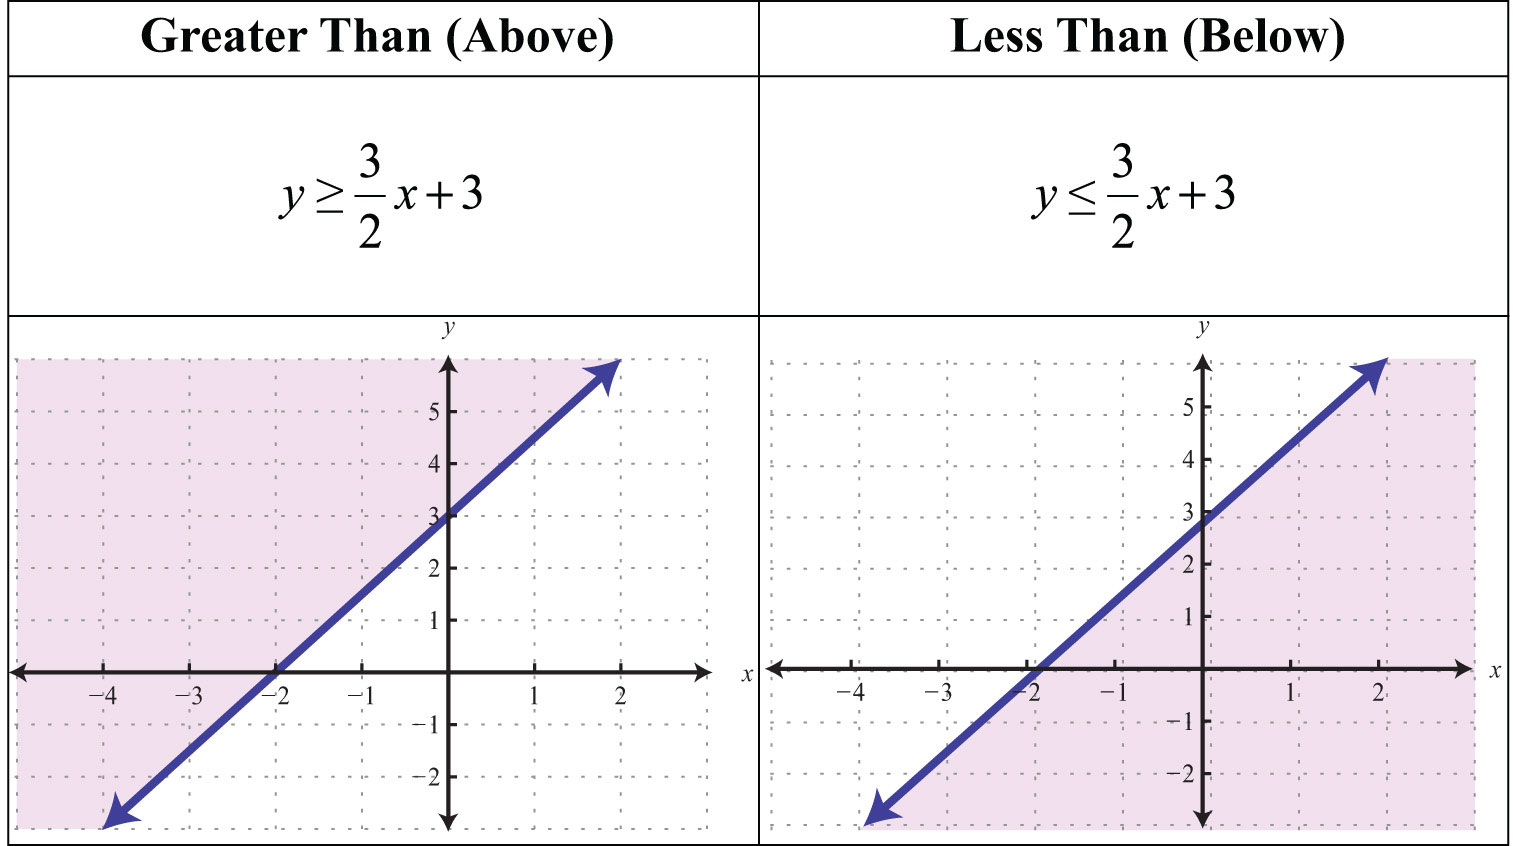 76 Systems Of Inequalities as well S06 08 Linear Inequalities Two Variab as well S07 Solving Linear Systems in addition S07 02 Solving Linear Systems By Subs also Quadratic Function Grapher. on steps for graphing linear equations